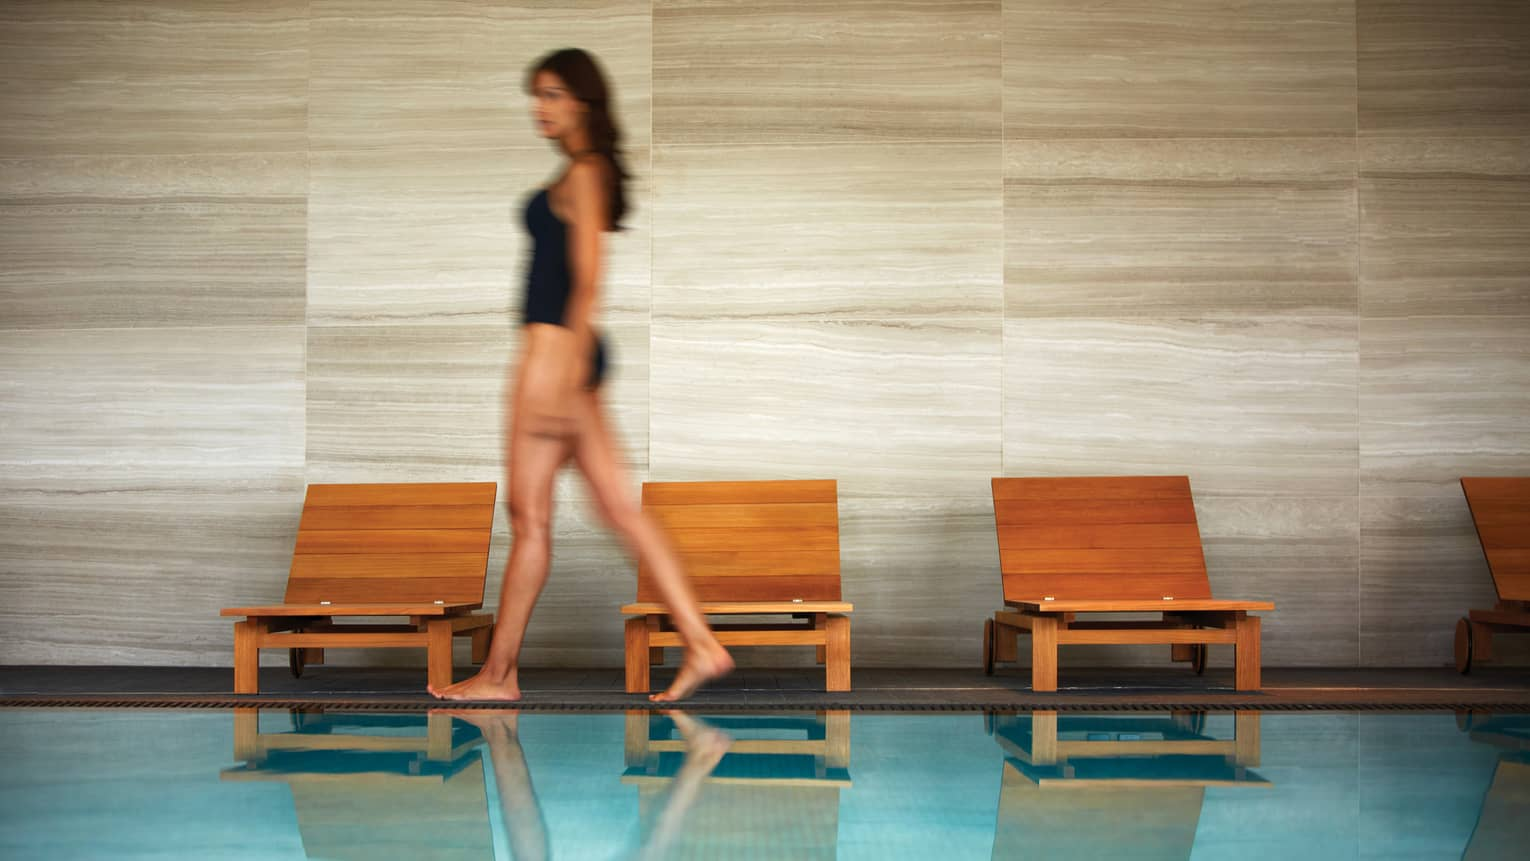 Blurry image of woman in black swimsuit as she walks by wood lounge chairs on pool deck